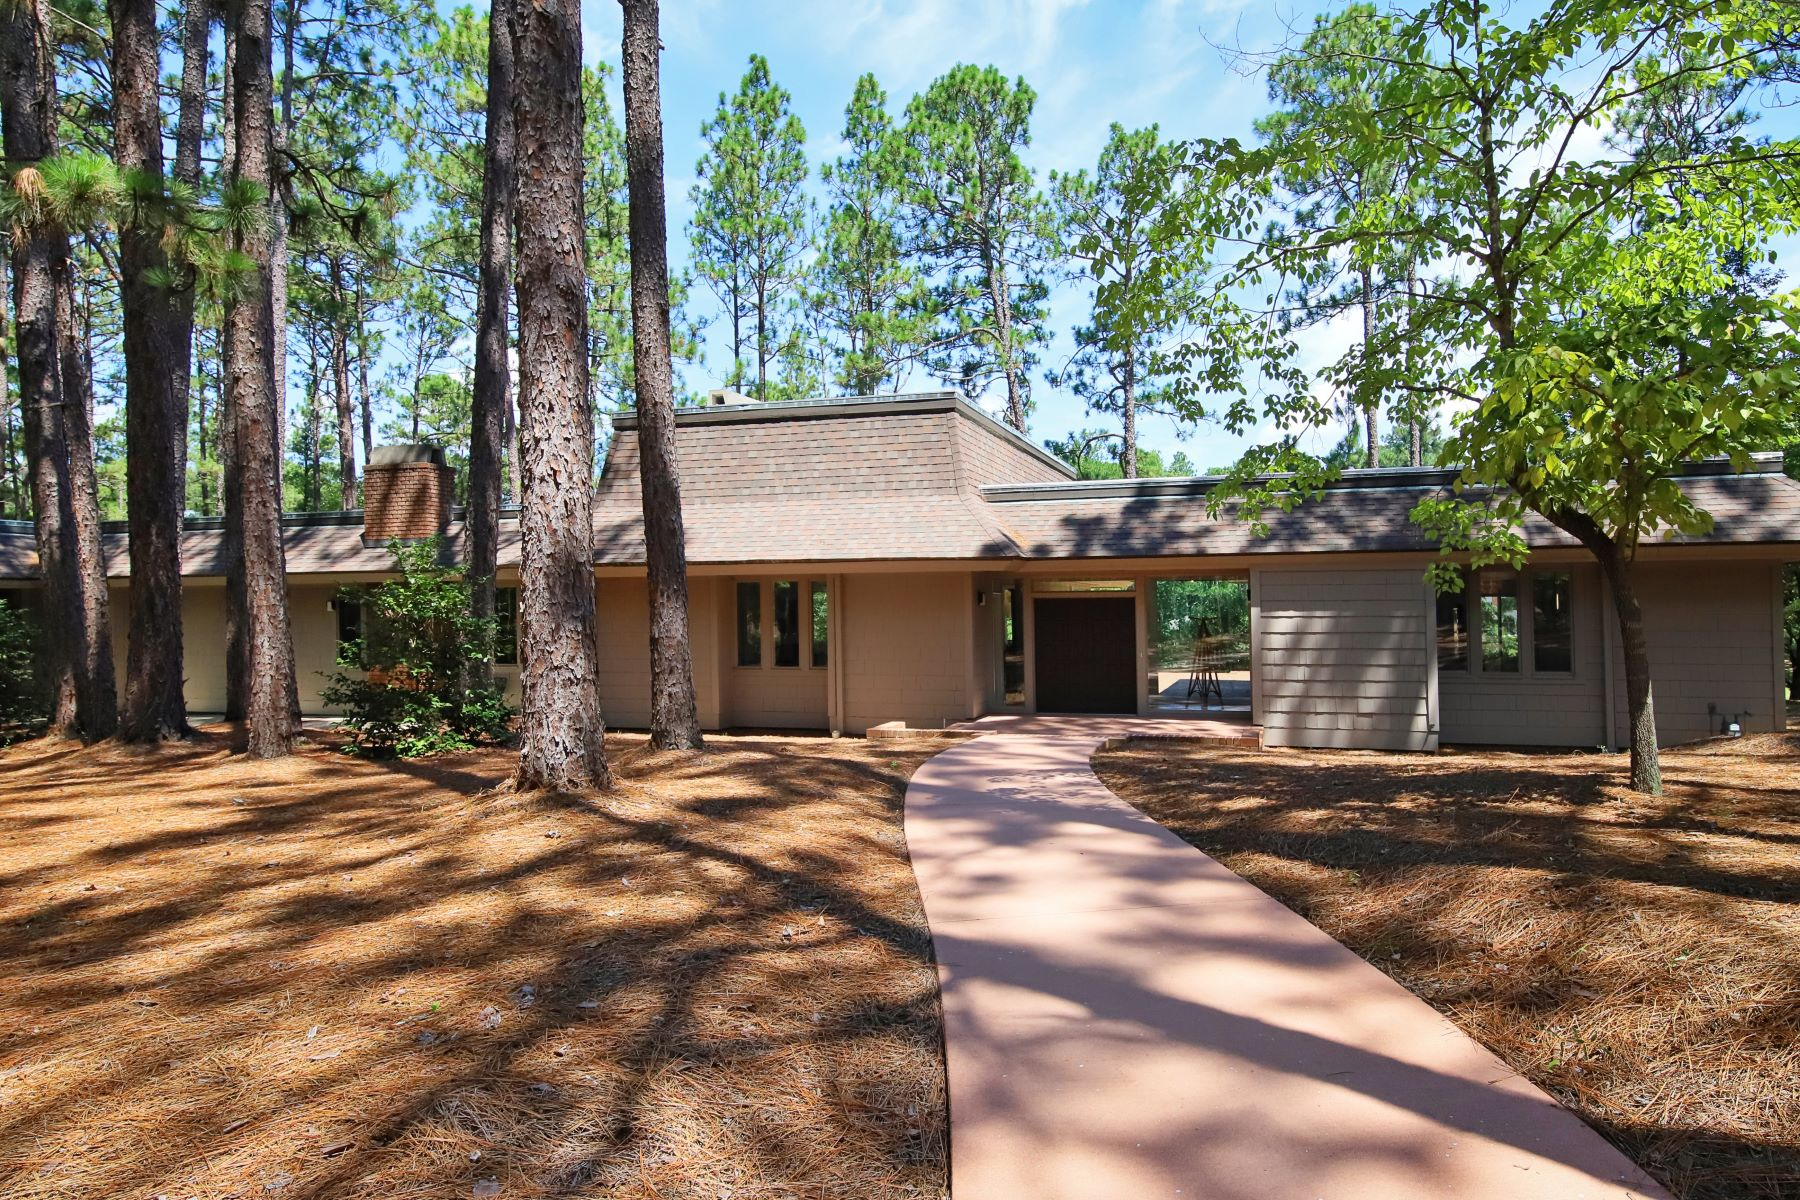 Single Family Homes for Active at FULLY RENOVATED MID CENTURY CONTEMPORARY WITH INCREDIBLE VIEWS! 400 Lake Dornoch Drive Pinehurst, North Carolina 28374 United States